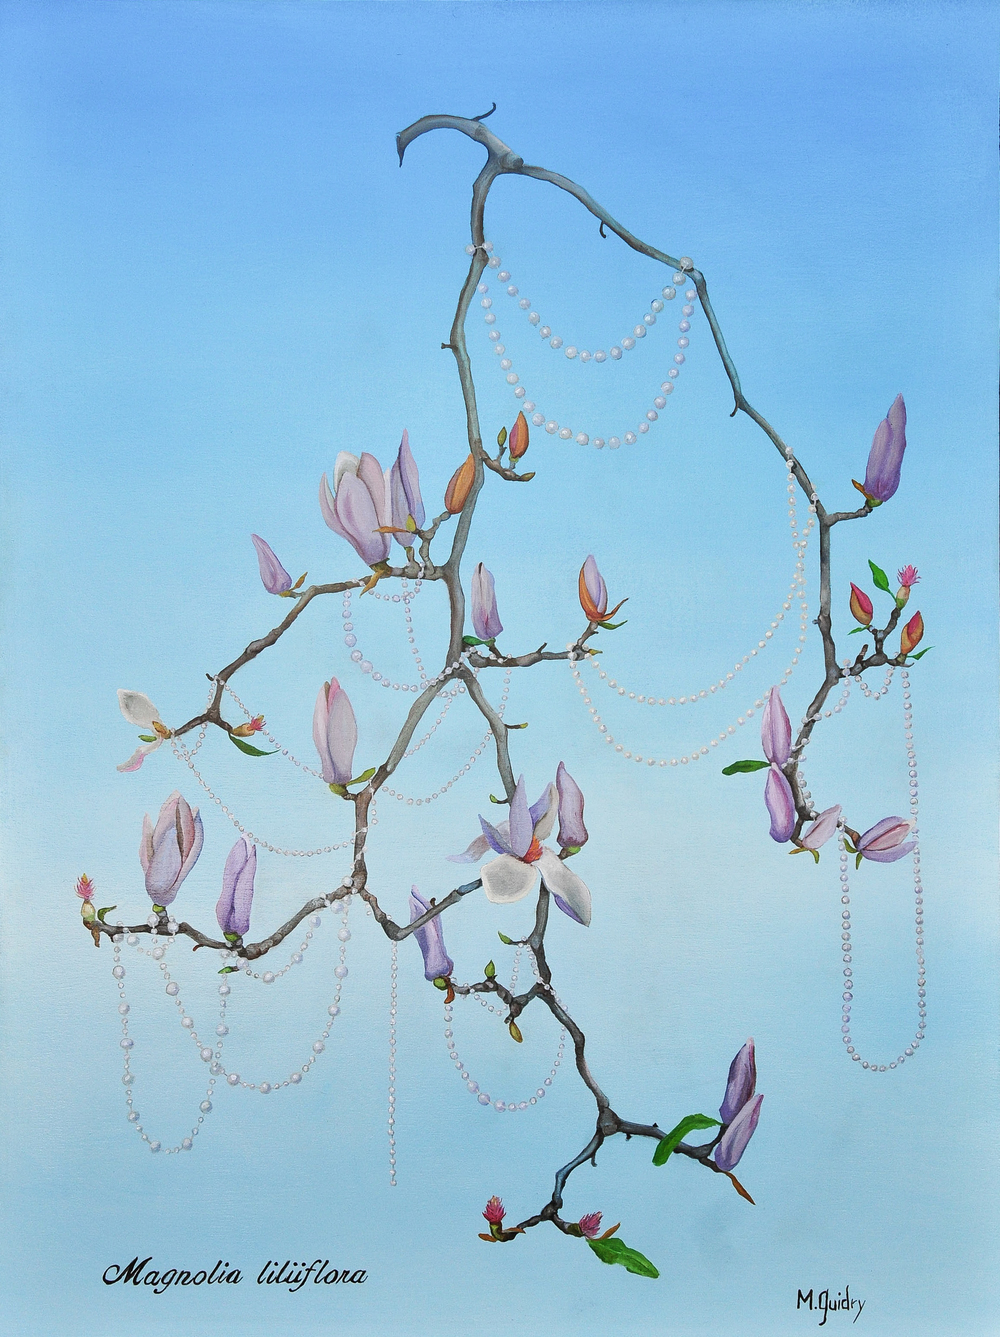 magnolia_liliiflora_japanese_tulip_mardi_gras_bead_tree_louisiana_m.guidry_michael_guidry_oil_painting_marsh_new_orleans_artist.jpg.jpg